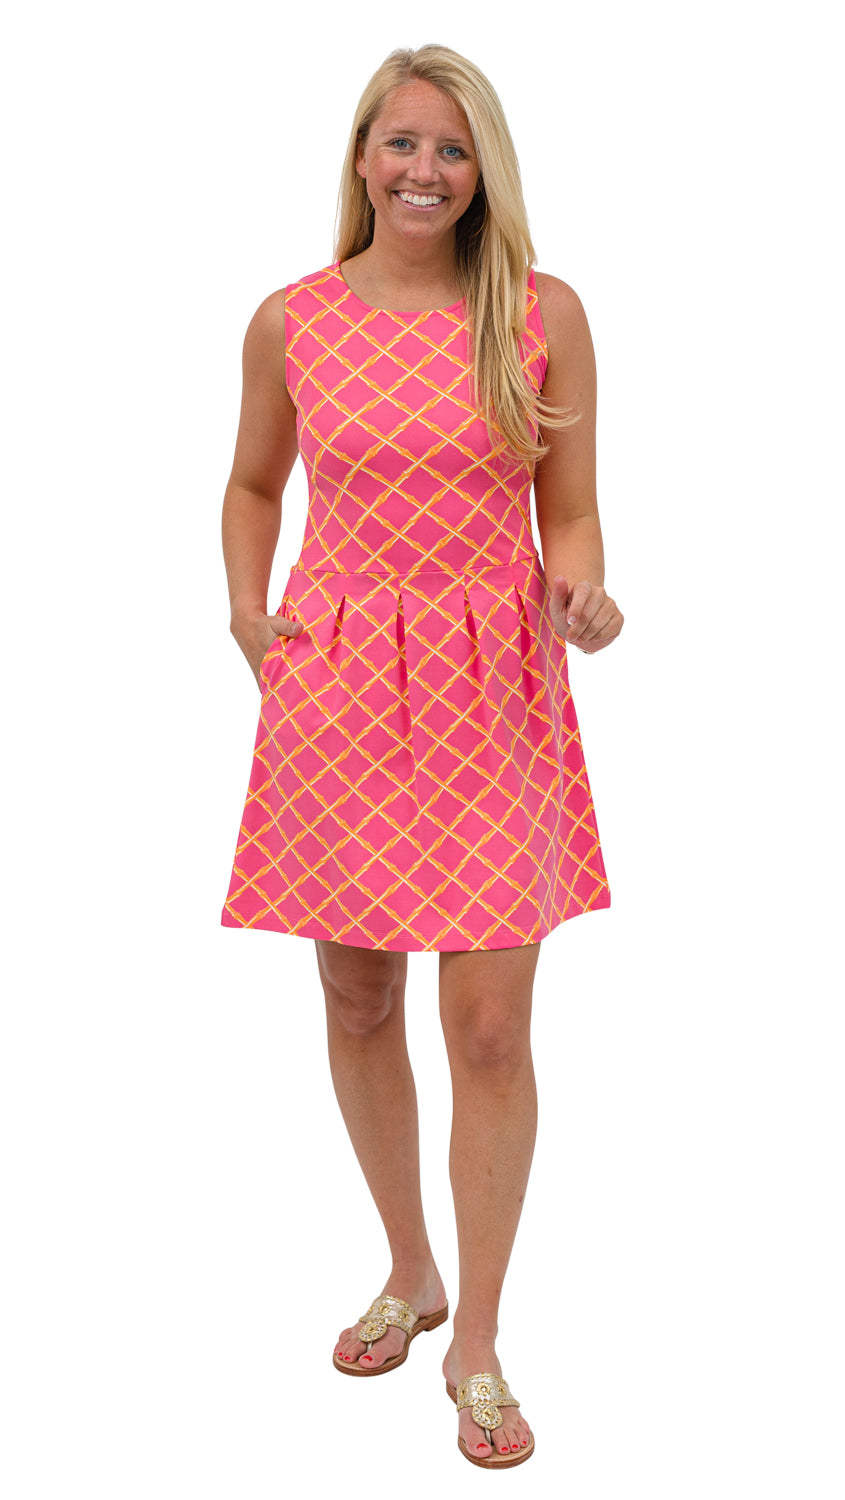 Boardwalk Dress - Pink/Orange Bamboo Lattice